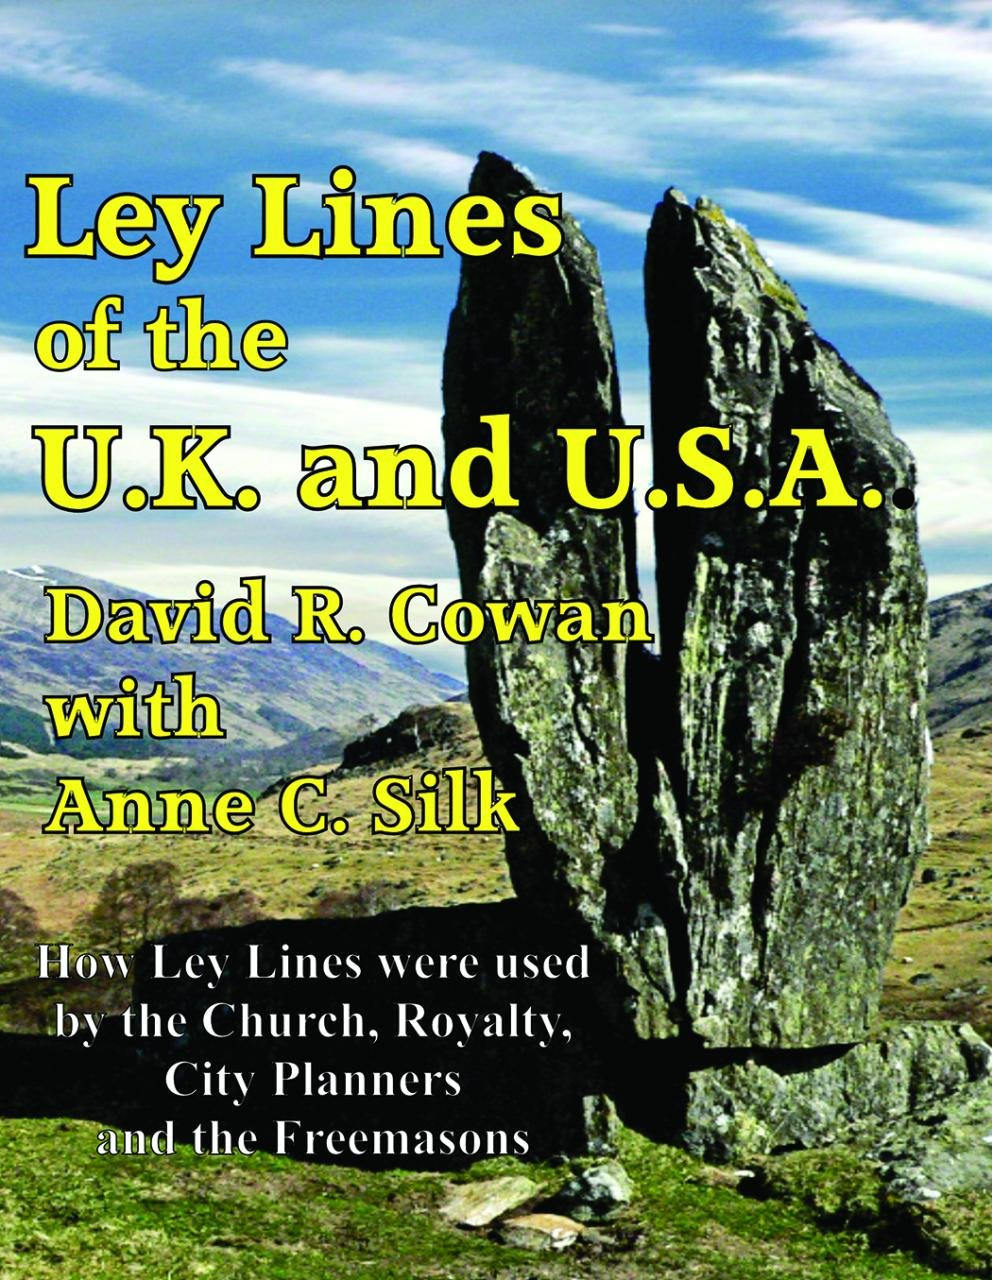 Ley Lines of the UK and USA: How Ley Lines were used by the Church